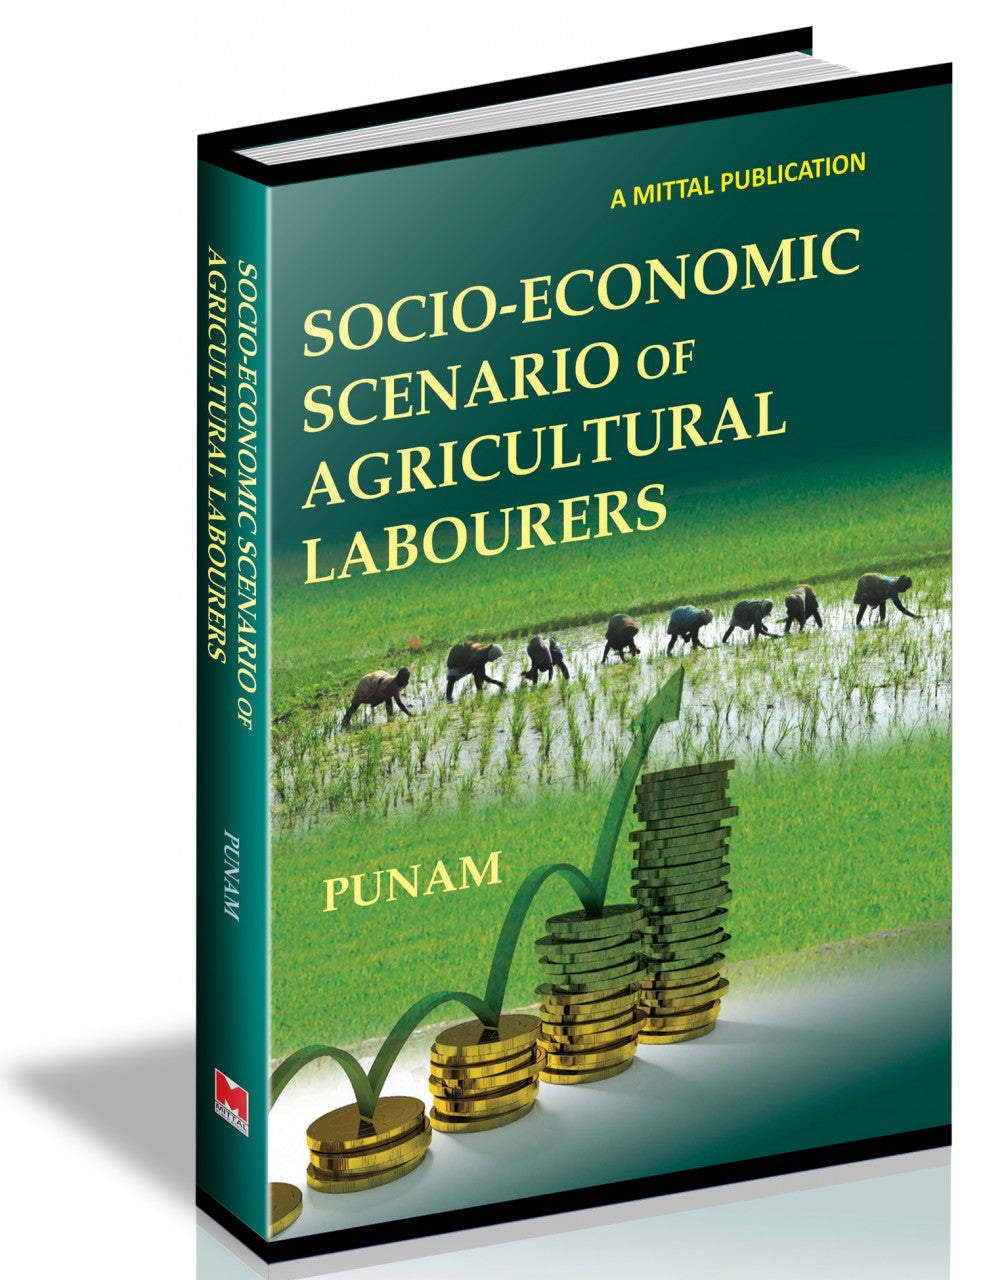 Socio-Economic Scenario of Agricultural Labourers